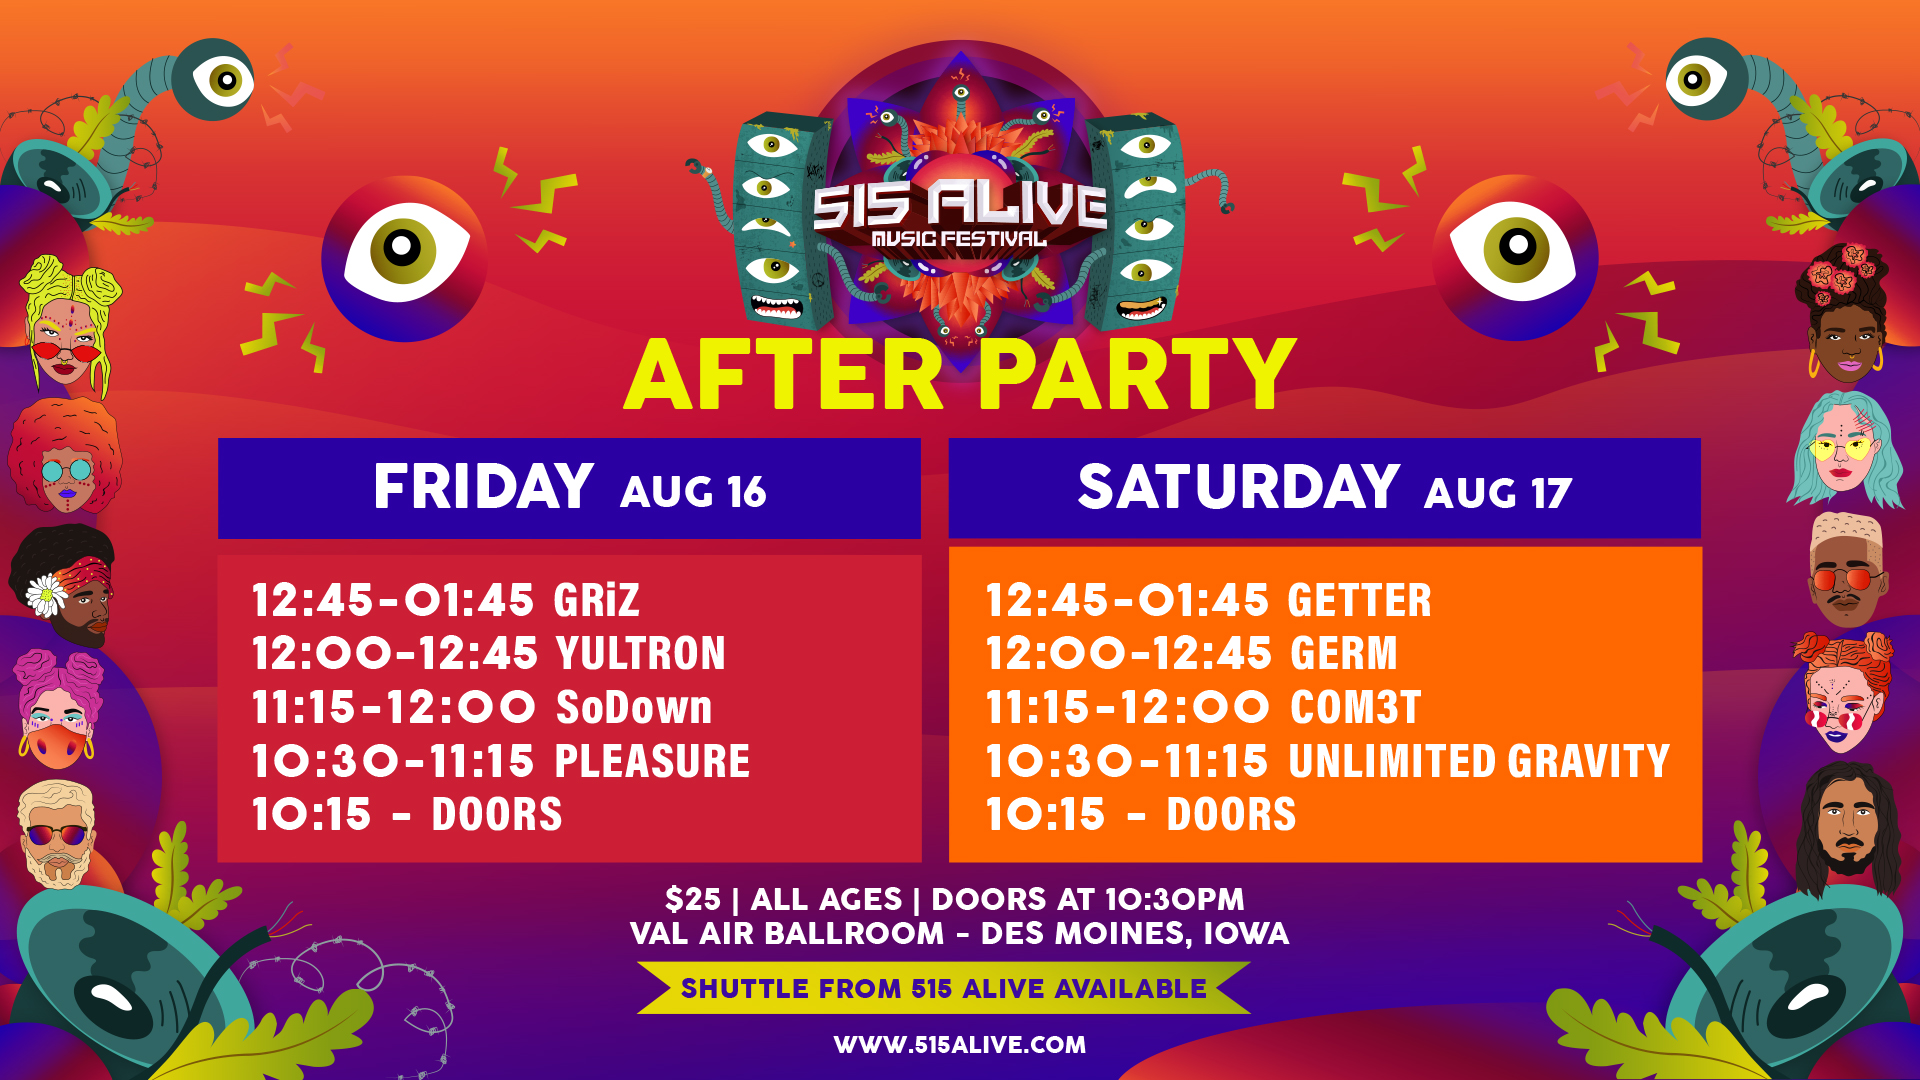 515 Alive 2019 After Party Set Times.jpg